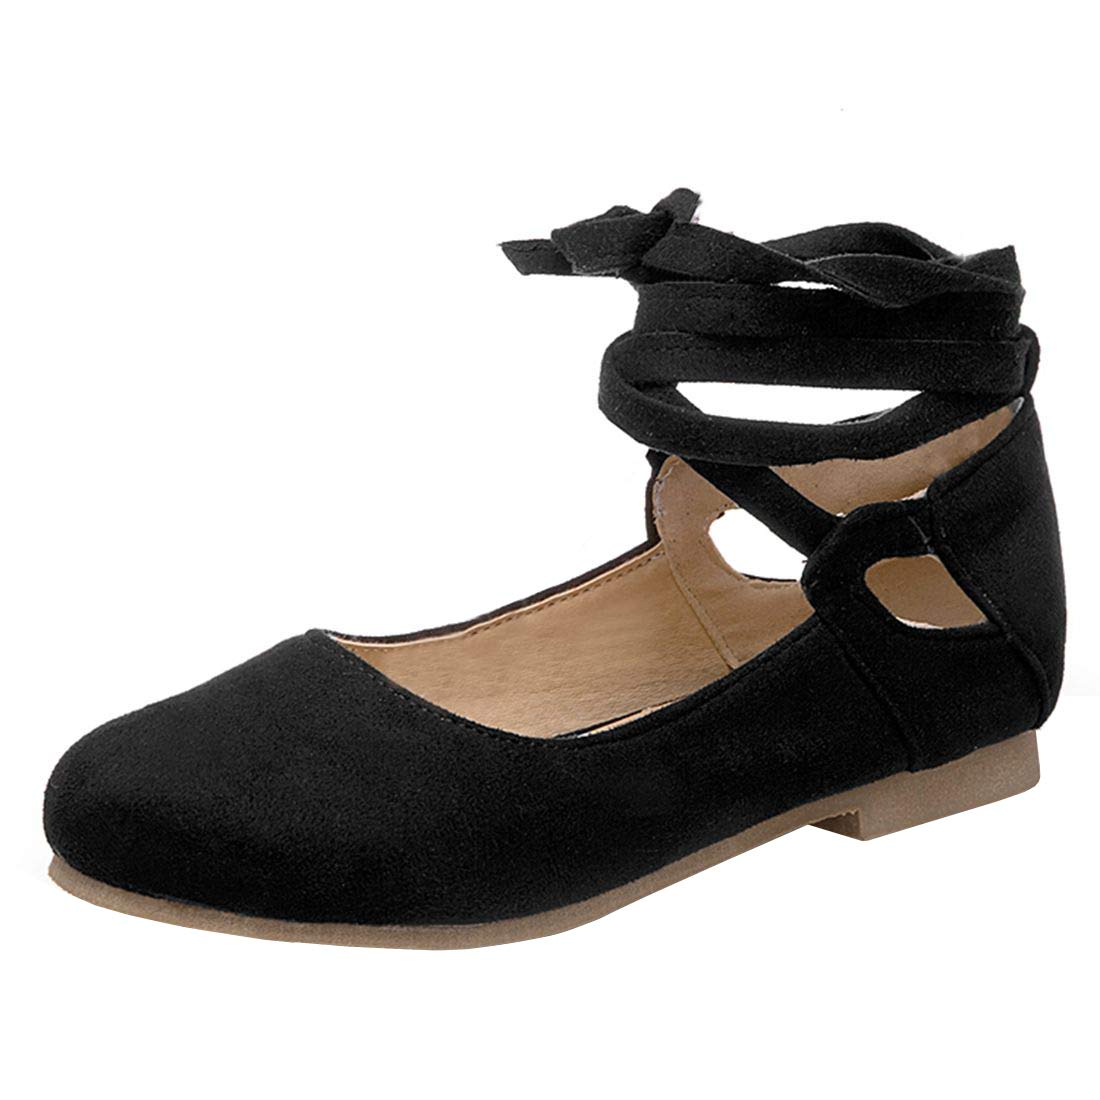 46f75c70ca3 Vitalo Women's Lace Up Ballet Flats with Ankle Strap Round Toe ...